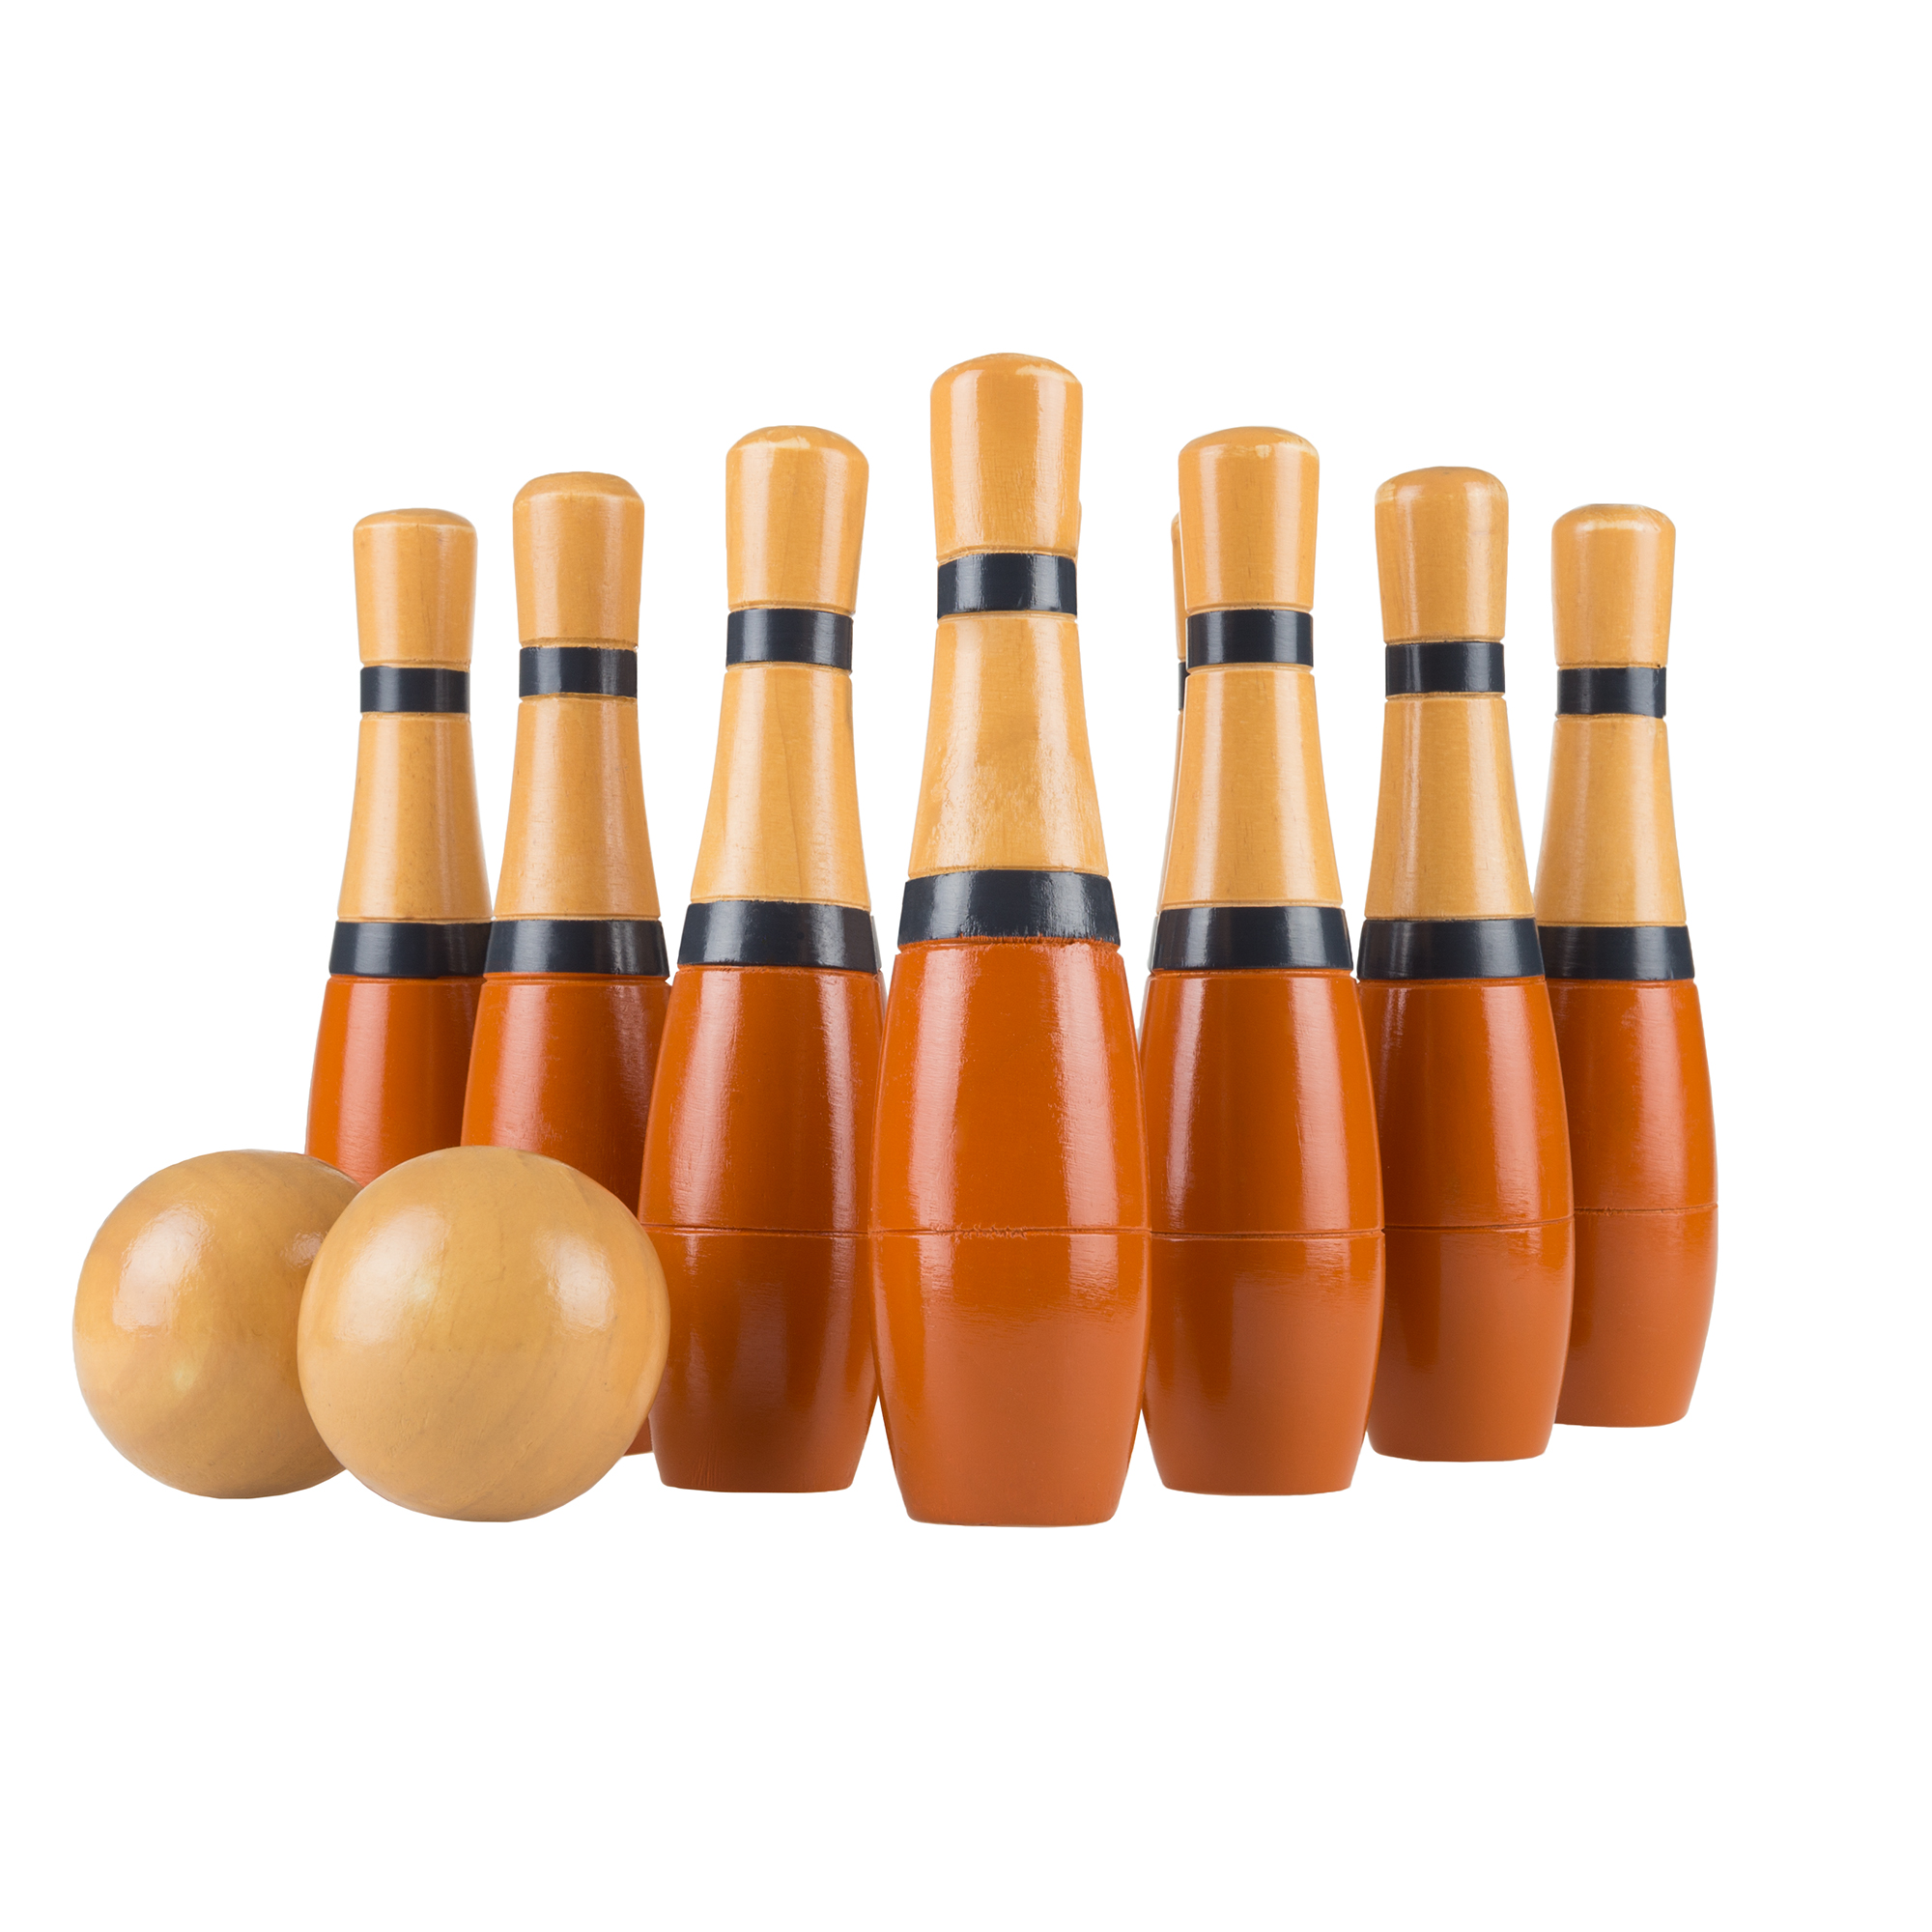 Lawn Bowling Game/Skittle Ball- Indoor/Outdoor Fun for Kids, Adults – 10 Wooden Pins, 2 Balls, and Mesh Bag Set by Hey! Play! (8 Inch -Purple/Yellow)